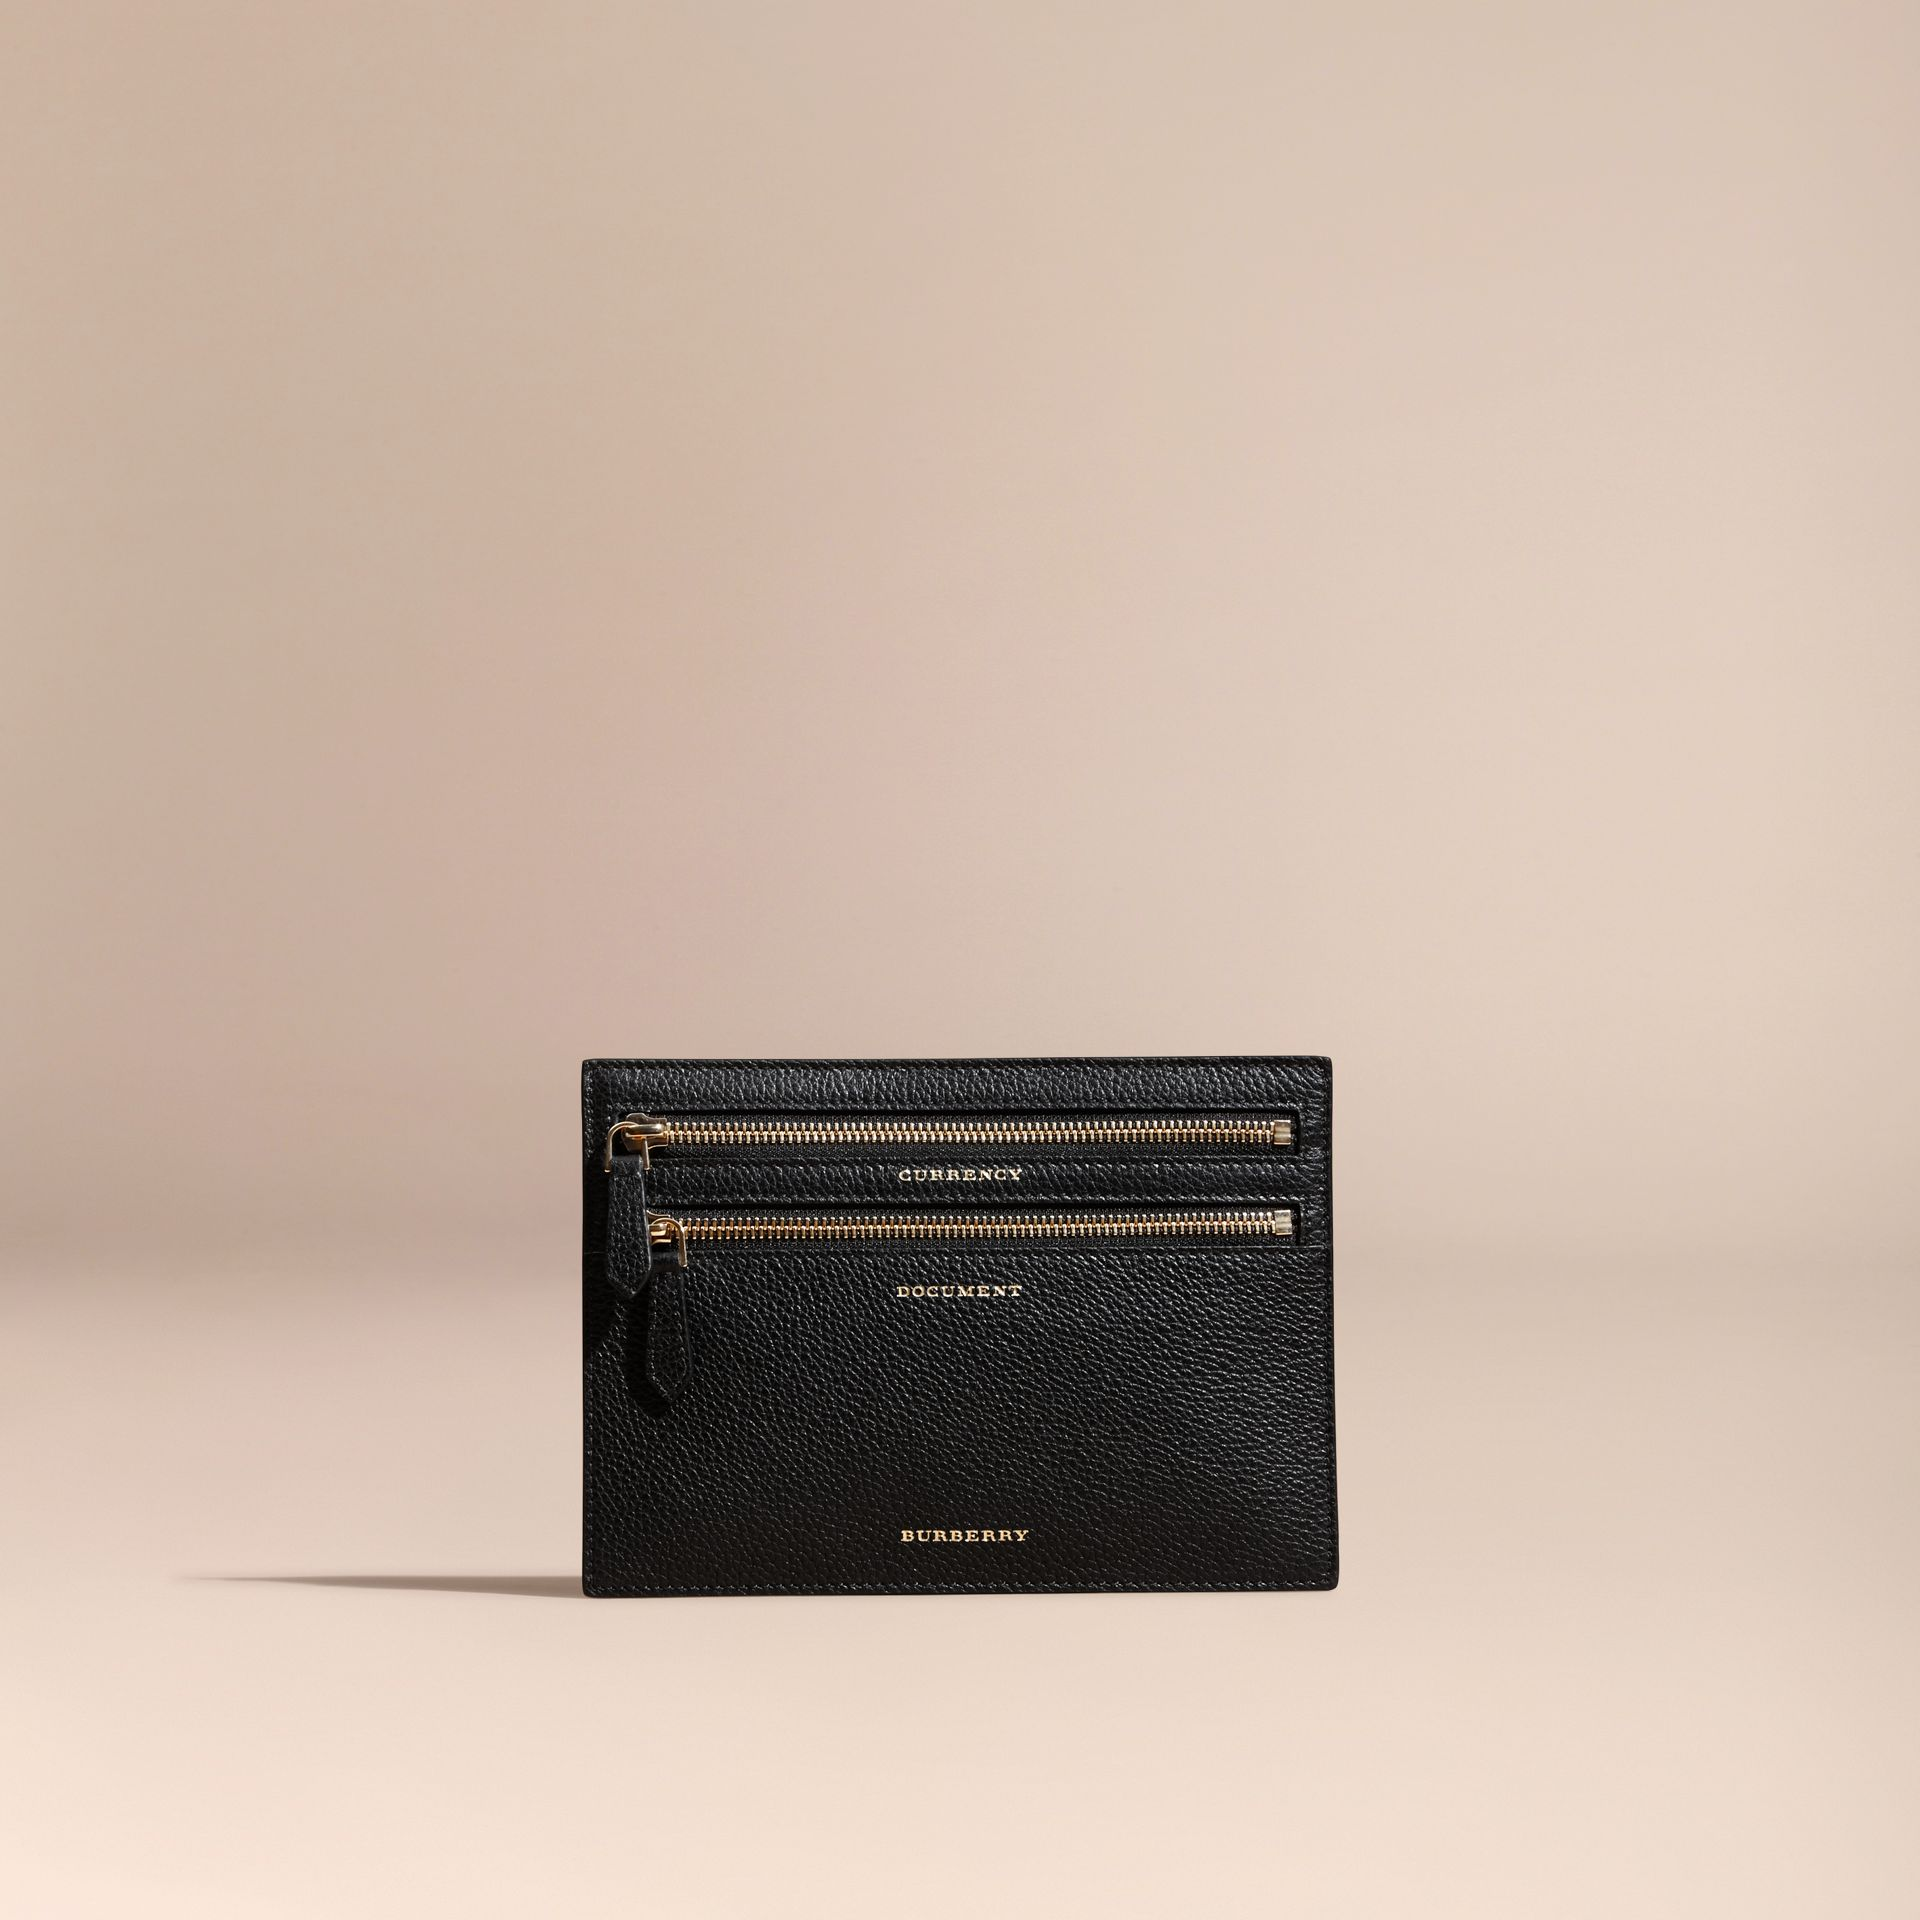 Grainy Leather Currency Wallet in Black | Burberry - gallery image 3